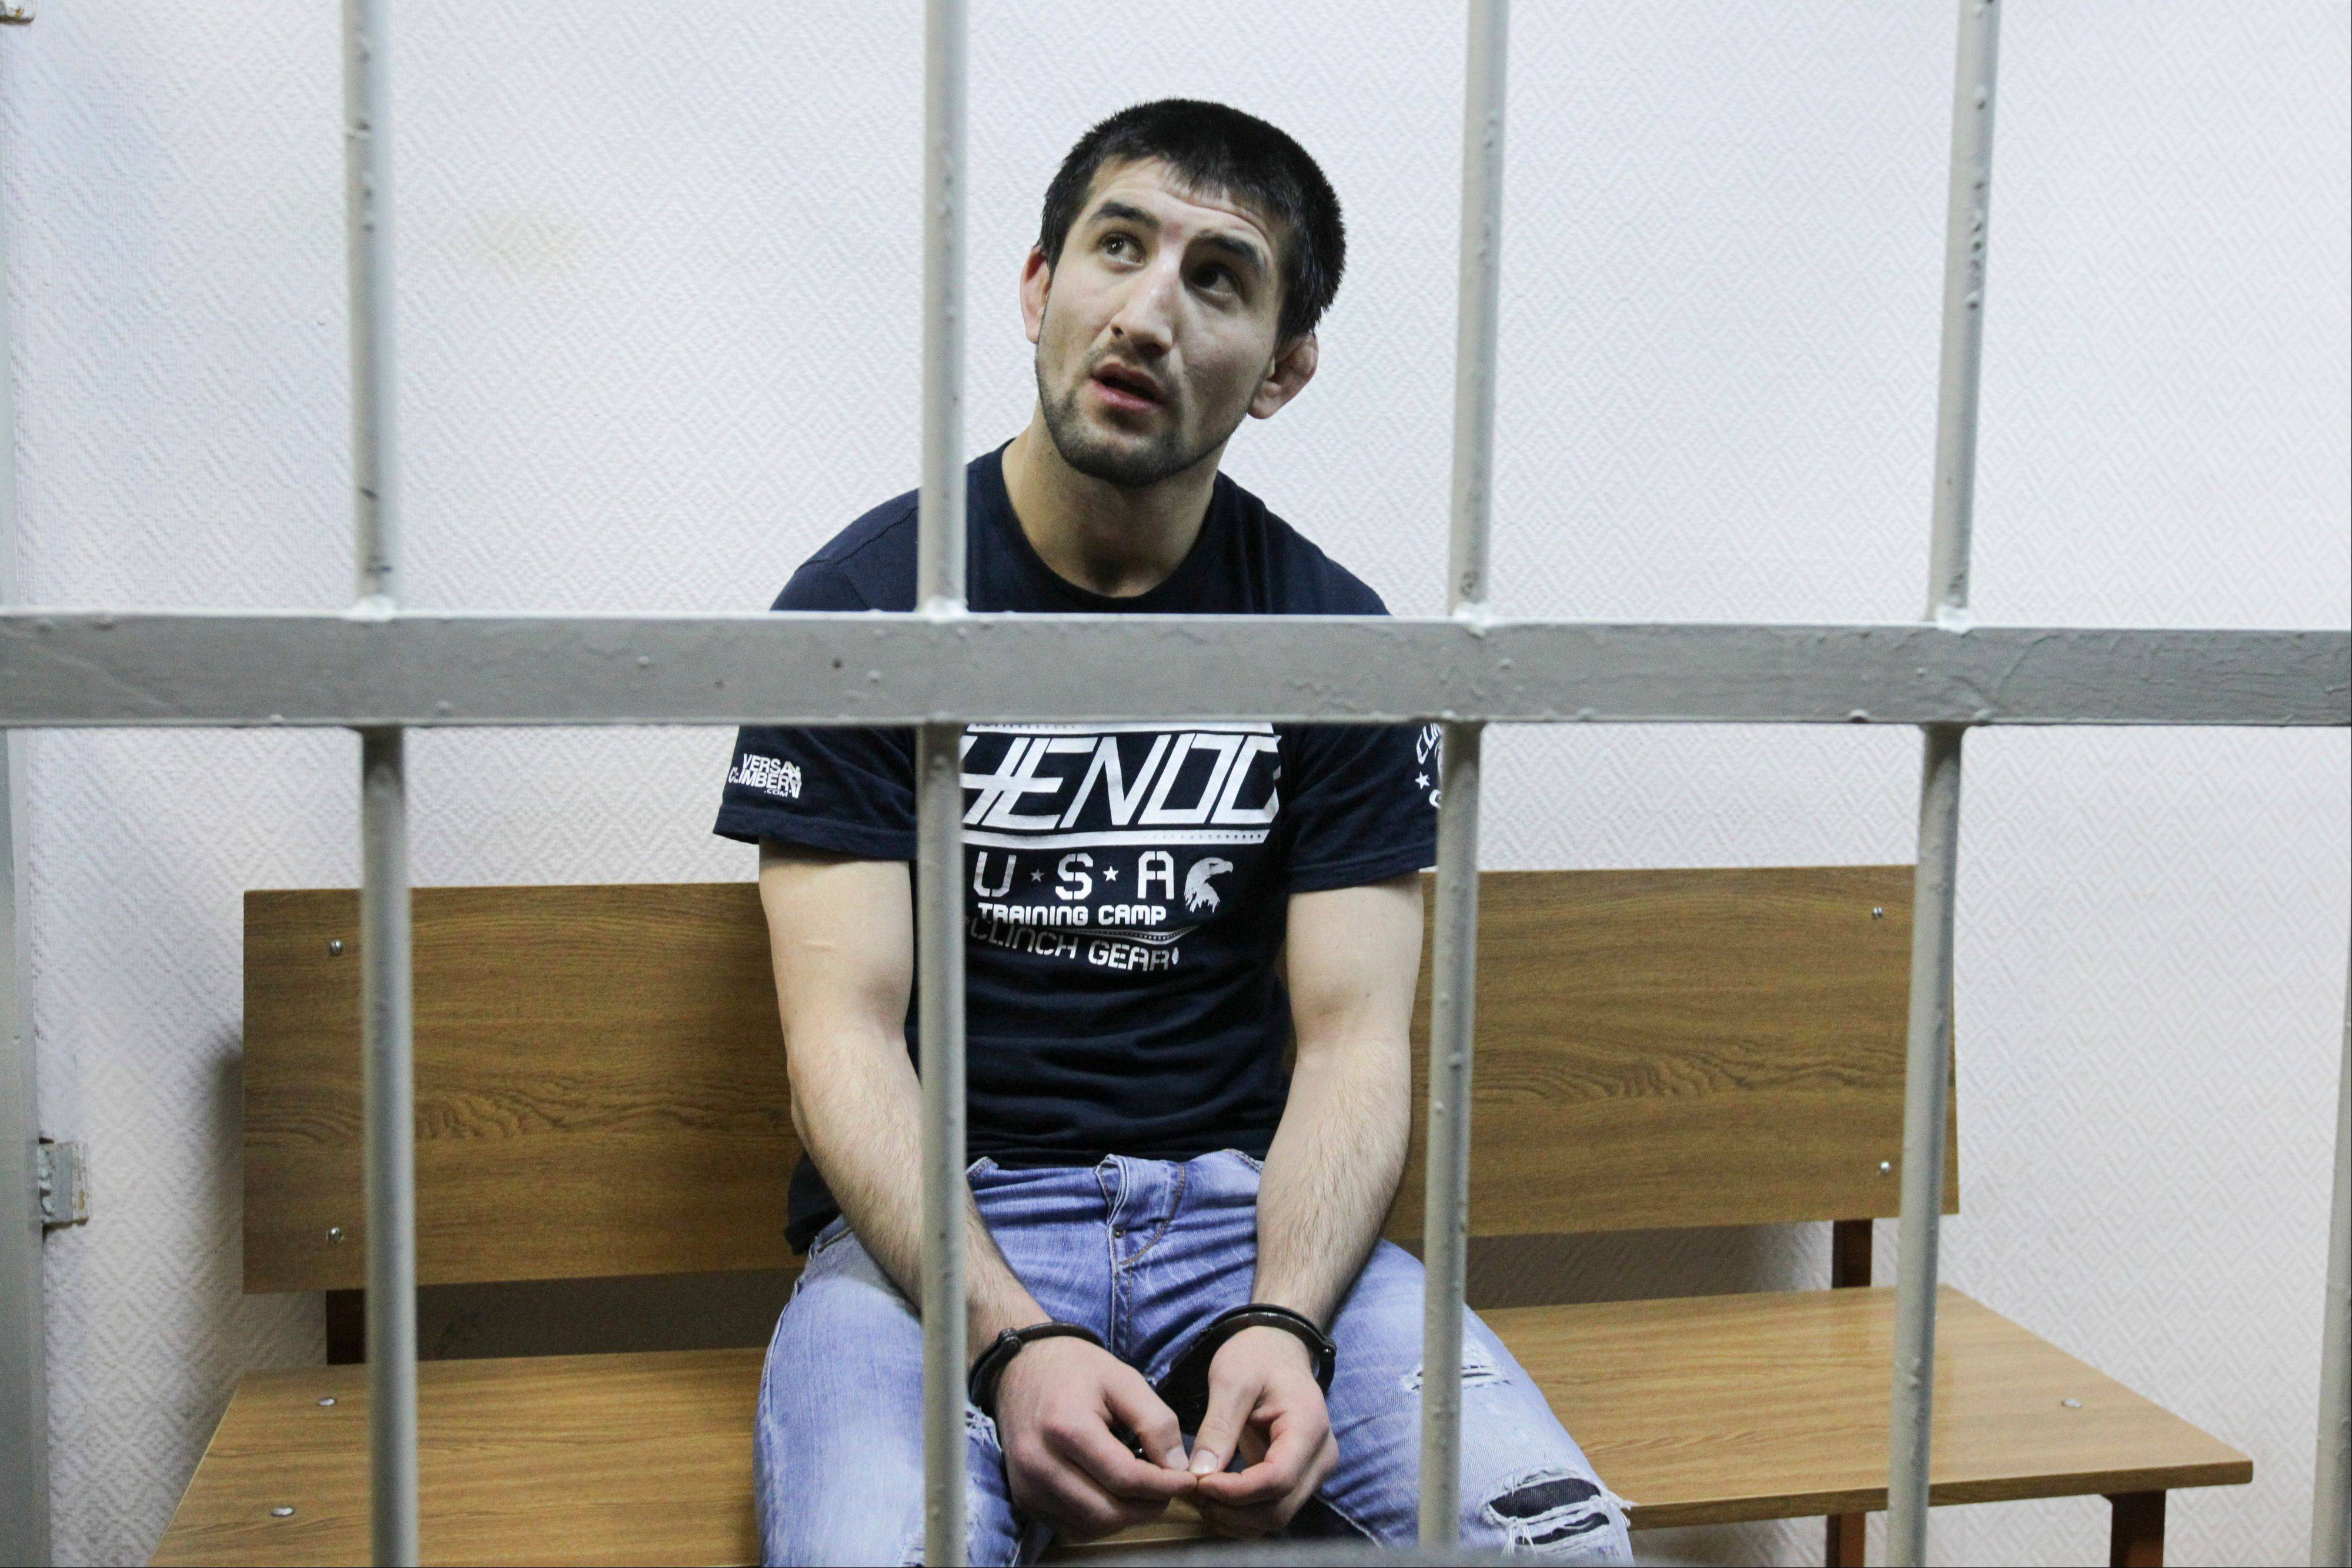 Russian martial arts champion Rasul Mirzayev was found guilty of involuntary manslaughter and sentenced to two years of house arrest over the death of a man he had punched outside a club. The verdict led to protests by nationalists outside the court and prompted Russian riot police to flood the wide square outside the Kremlin to prevent possible violent clashes between nationalists and ethnic minorities from the Caucasus.